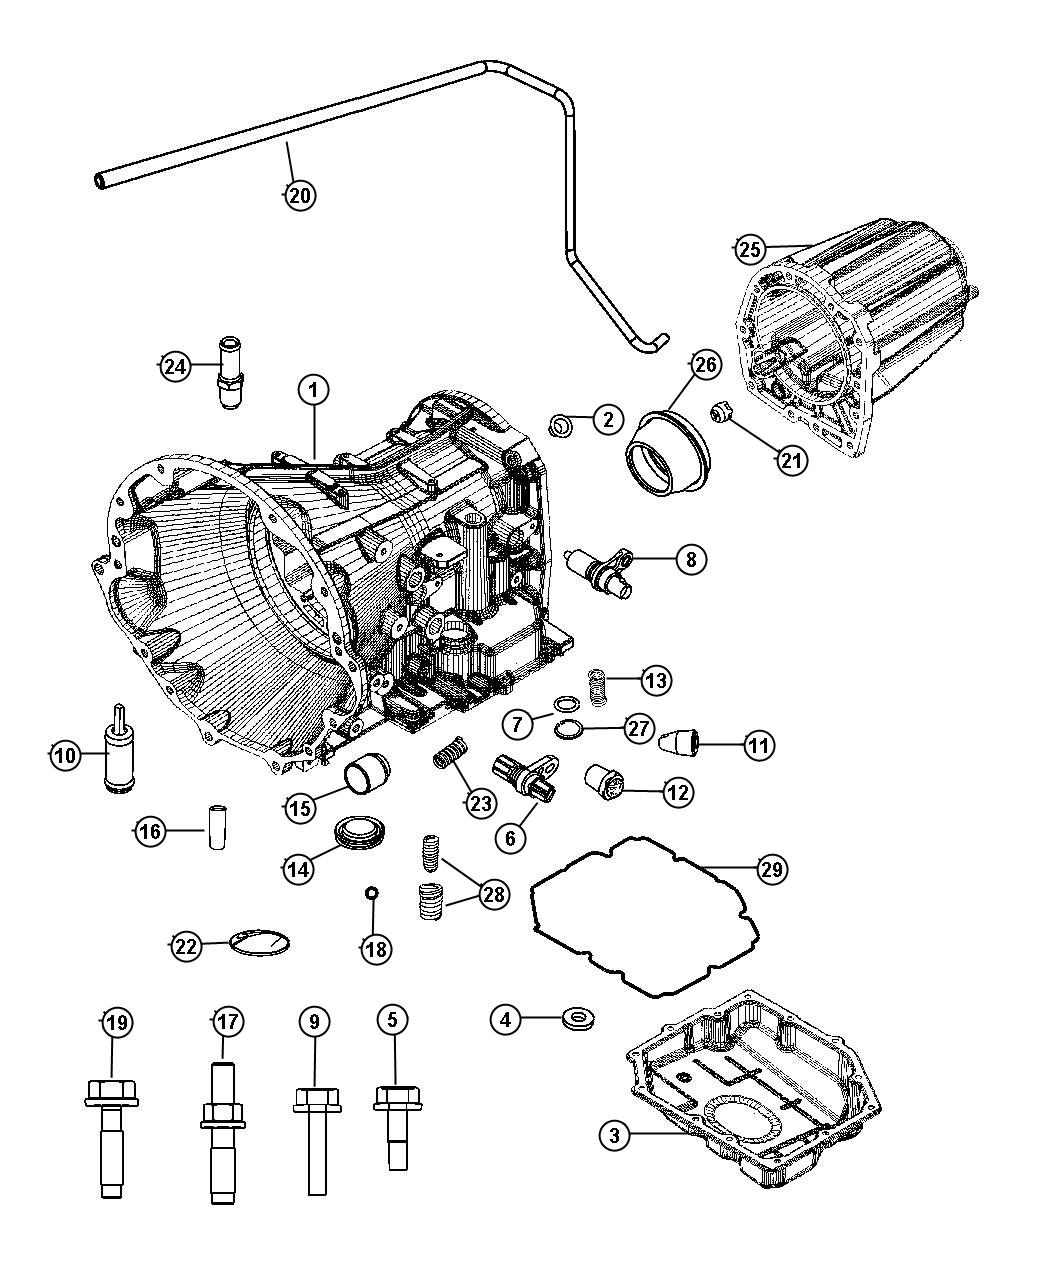 Dodge Ram 2500 Tailgate Parts Diagram. Dodge. Auto Wiring